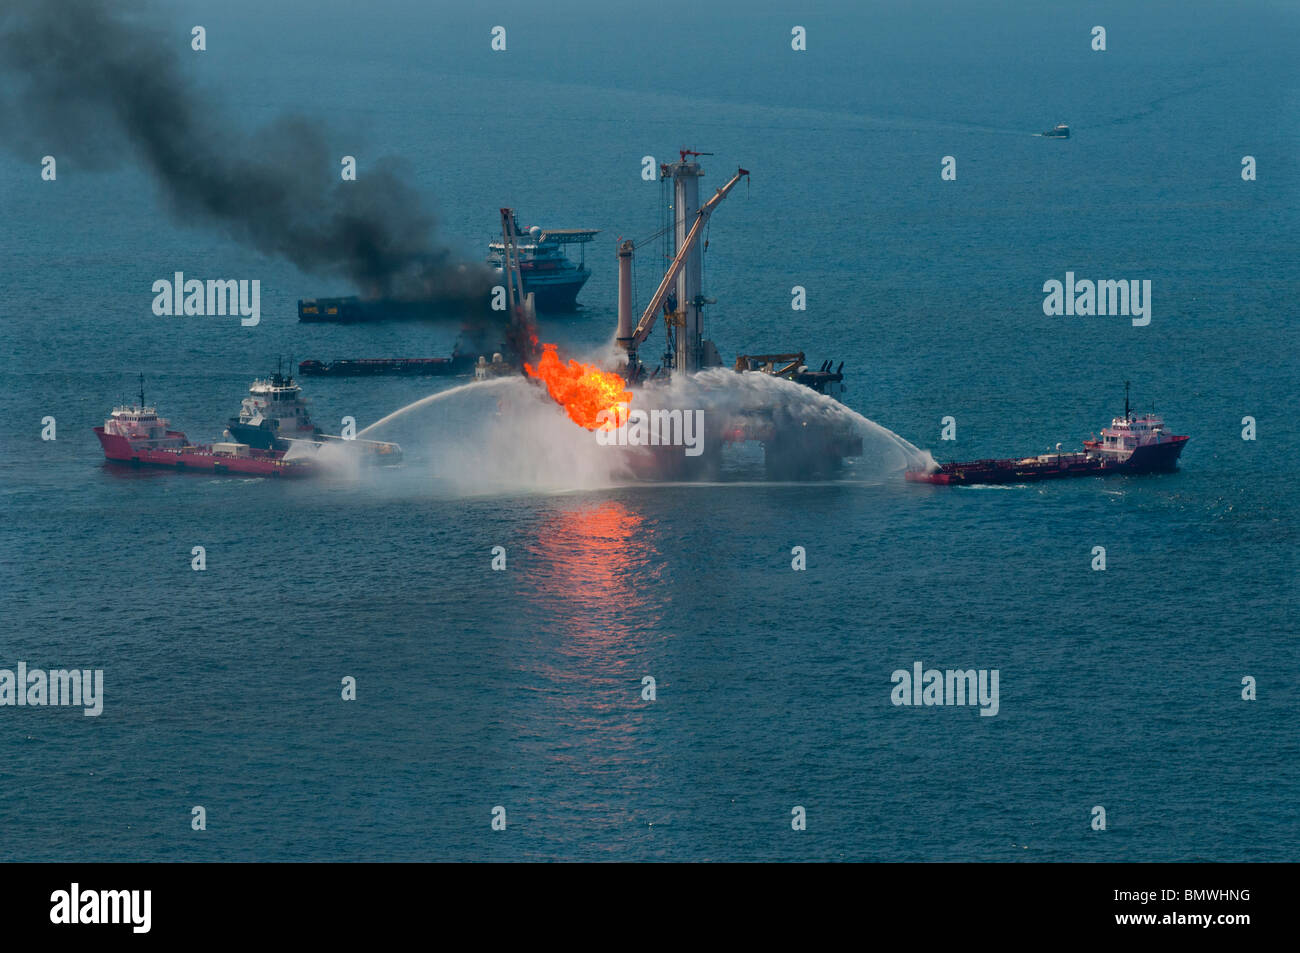 Helix Q4000 burning oil at the MC252 site, Gulf of Mexico, USA. - Stock Image